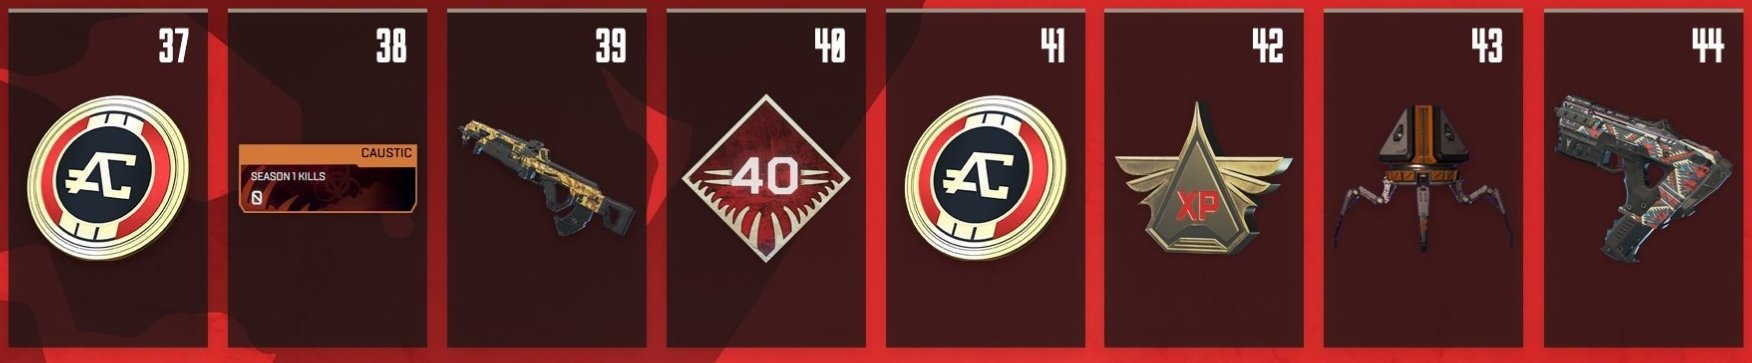 Apex Legends Battle Pass Rewards Levels 30-44